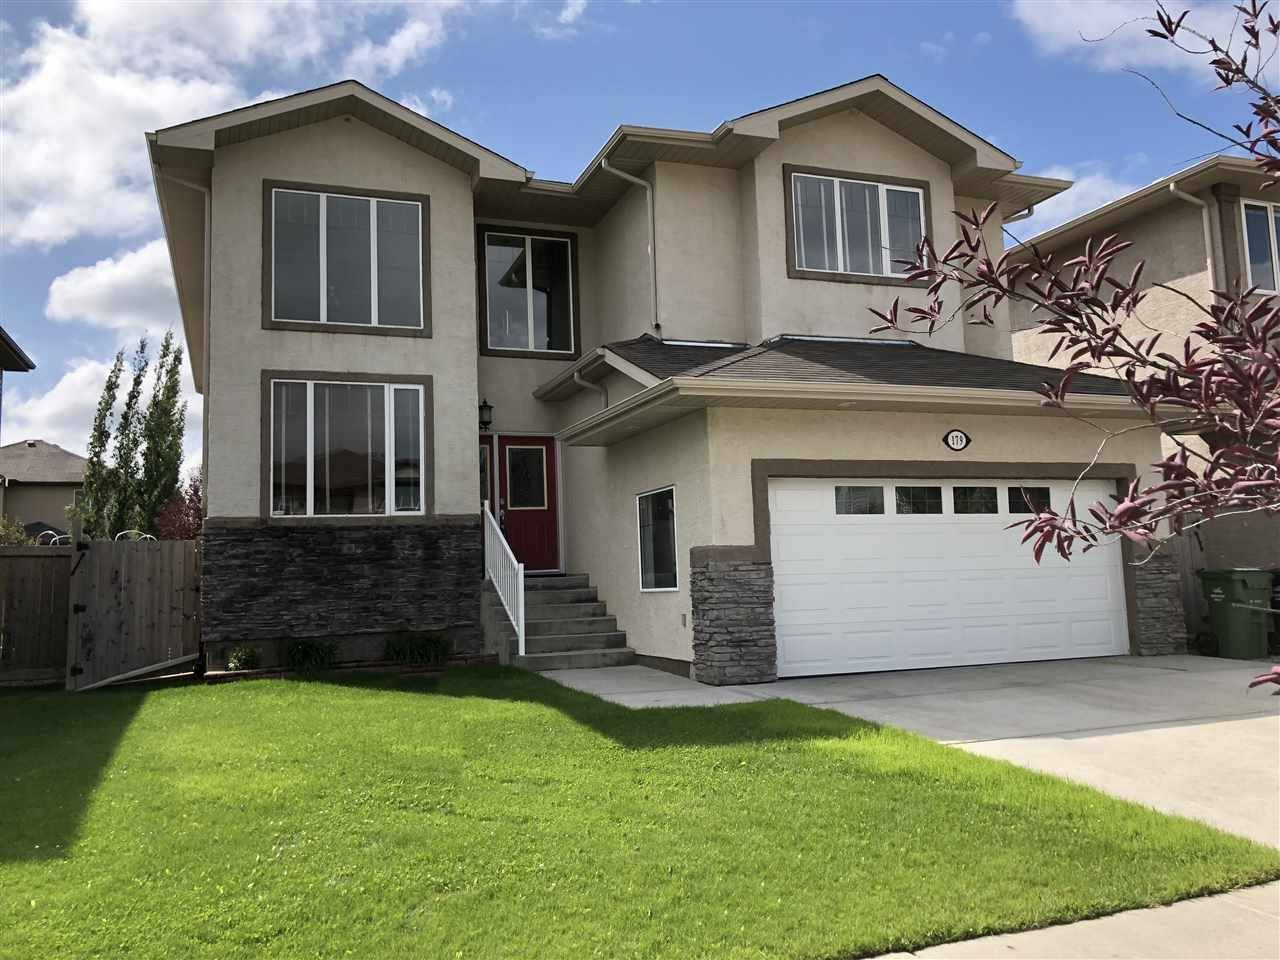 House for sale at 179 Mcdowell Wd Leduc Alberta - MLS: E4166680